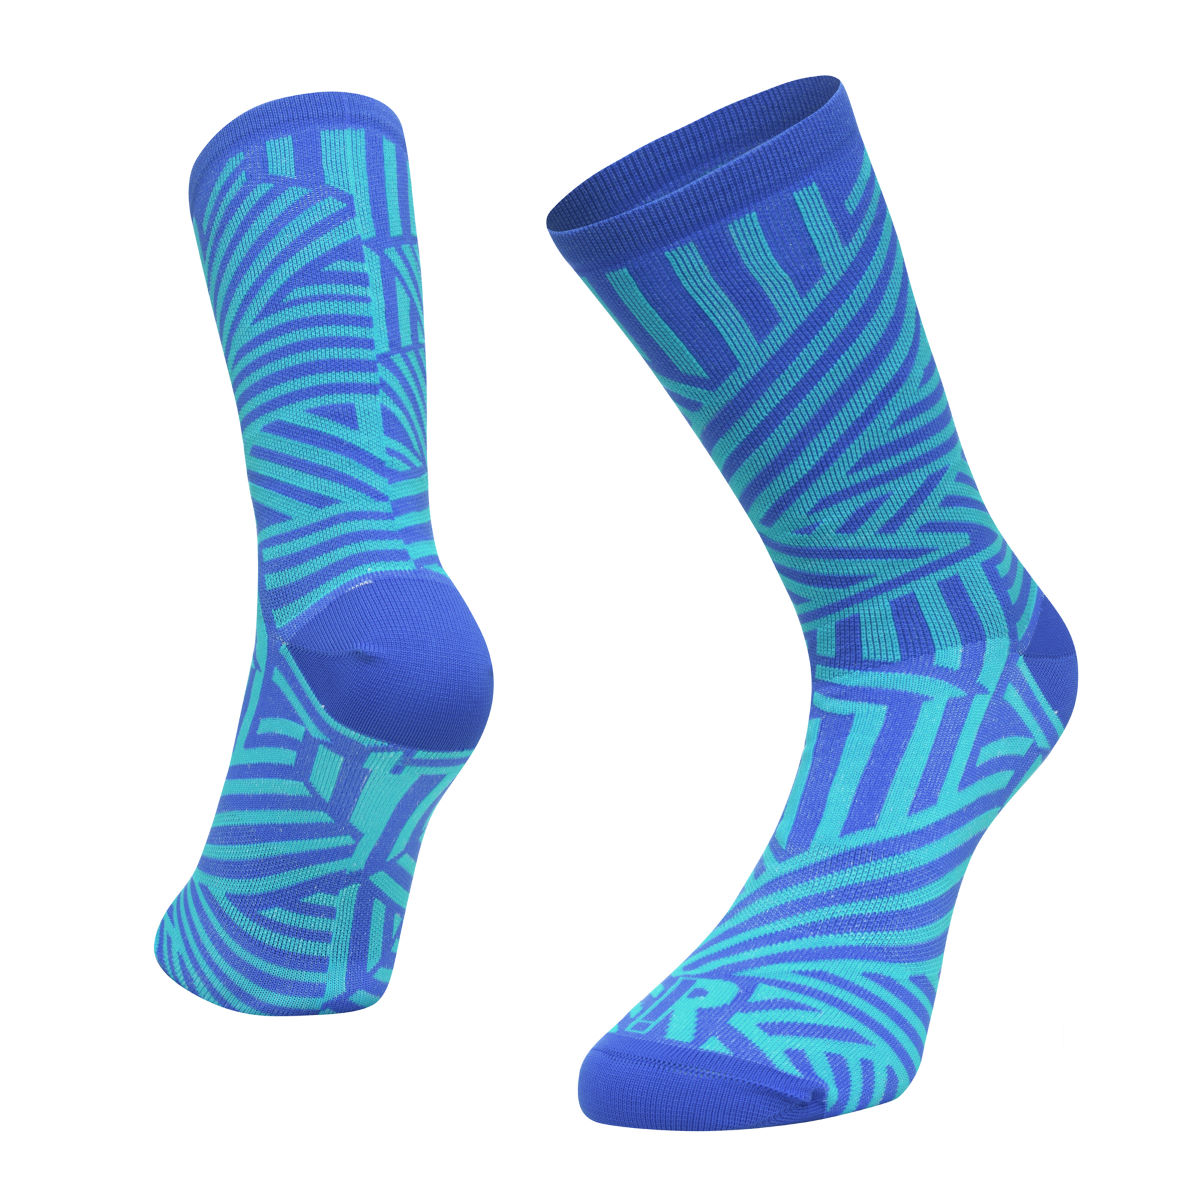 Ratio Dash 20 cm Sock (Blue/Blue) - Calcetines